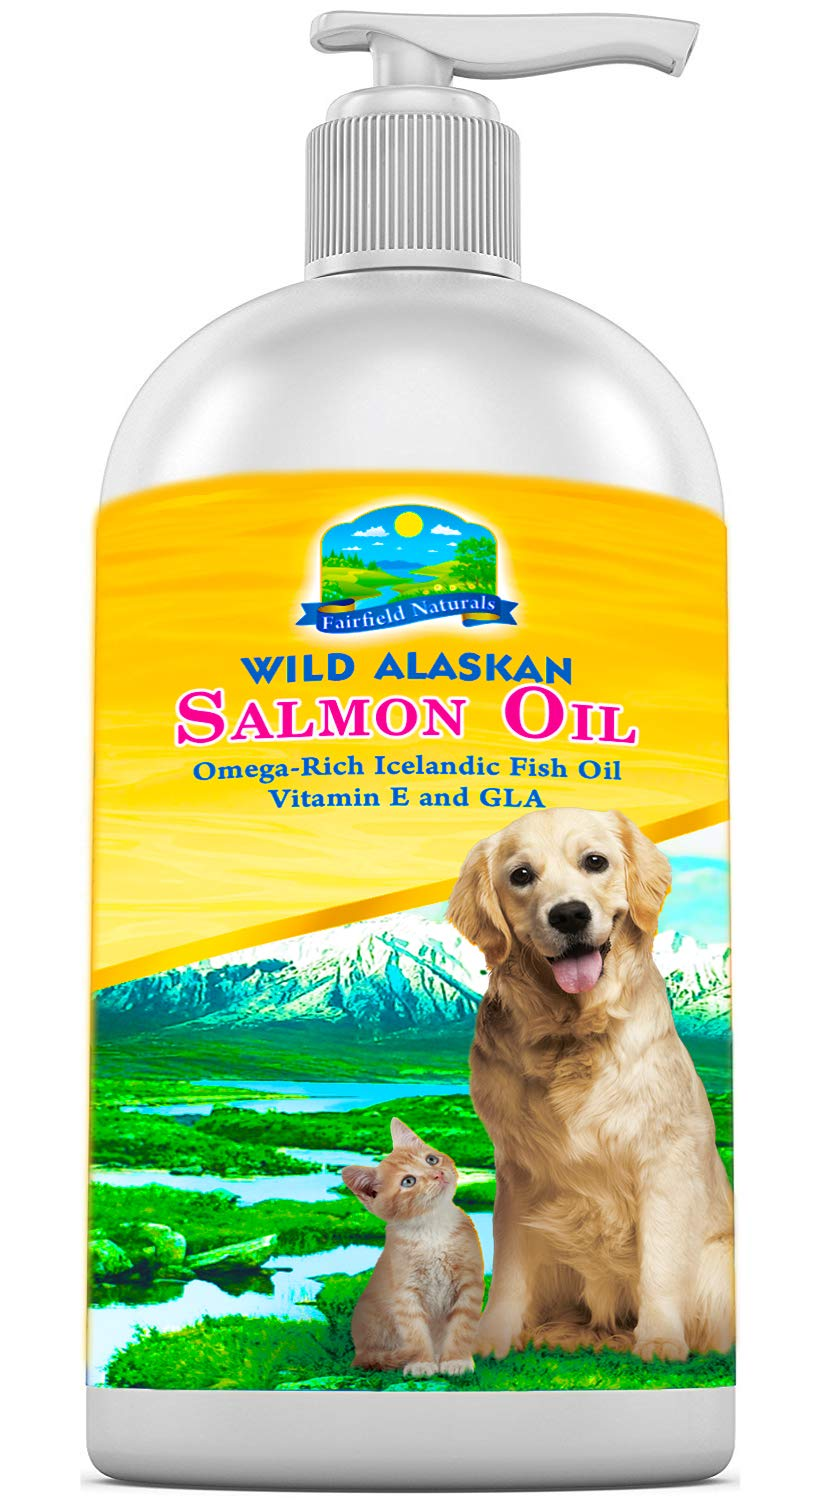 Fairfield Naturals Omega 3 Fish Oil Dogs & Cats - Dog Food Supplement Alaskan Salmon Oil, Icelandic Fish & Organic Borage Oil - GLA & Vitamin E + DHA